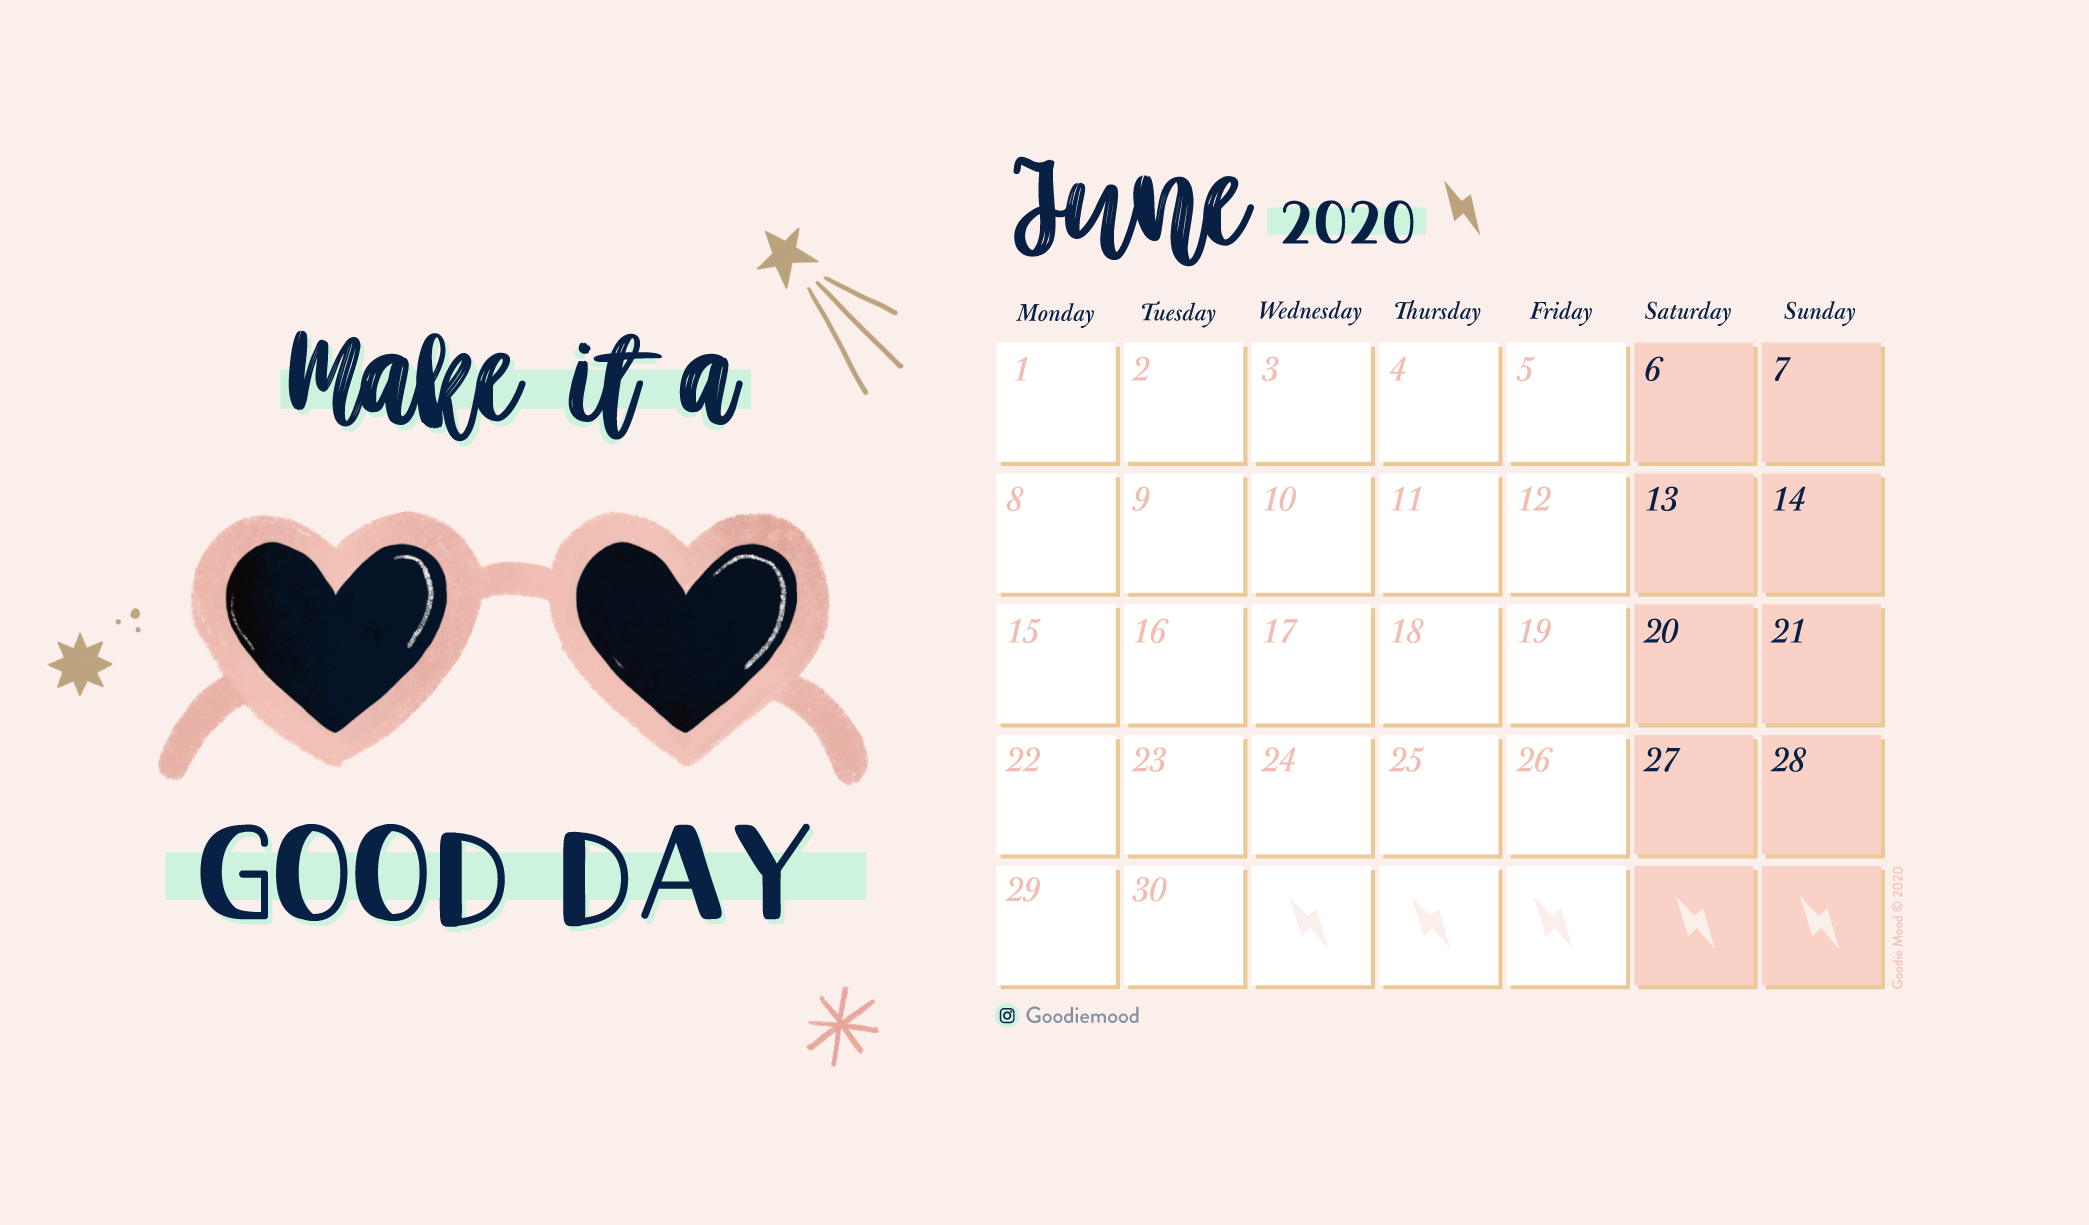 Download your free wallpaper and calendar for June 2020 - Goodie Mood